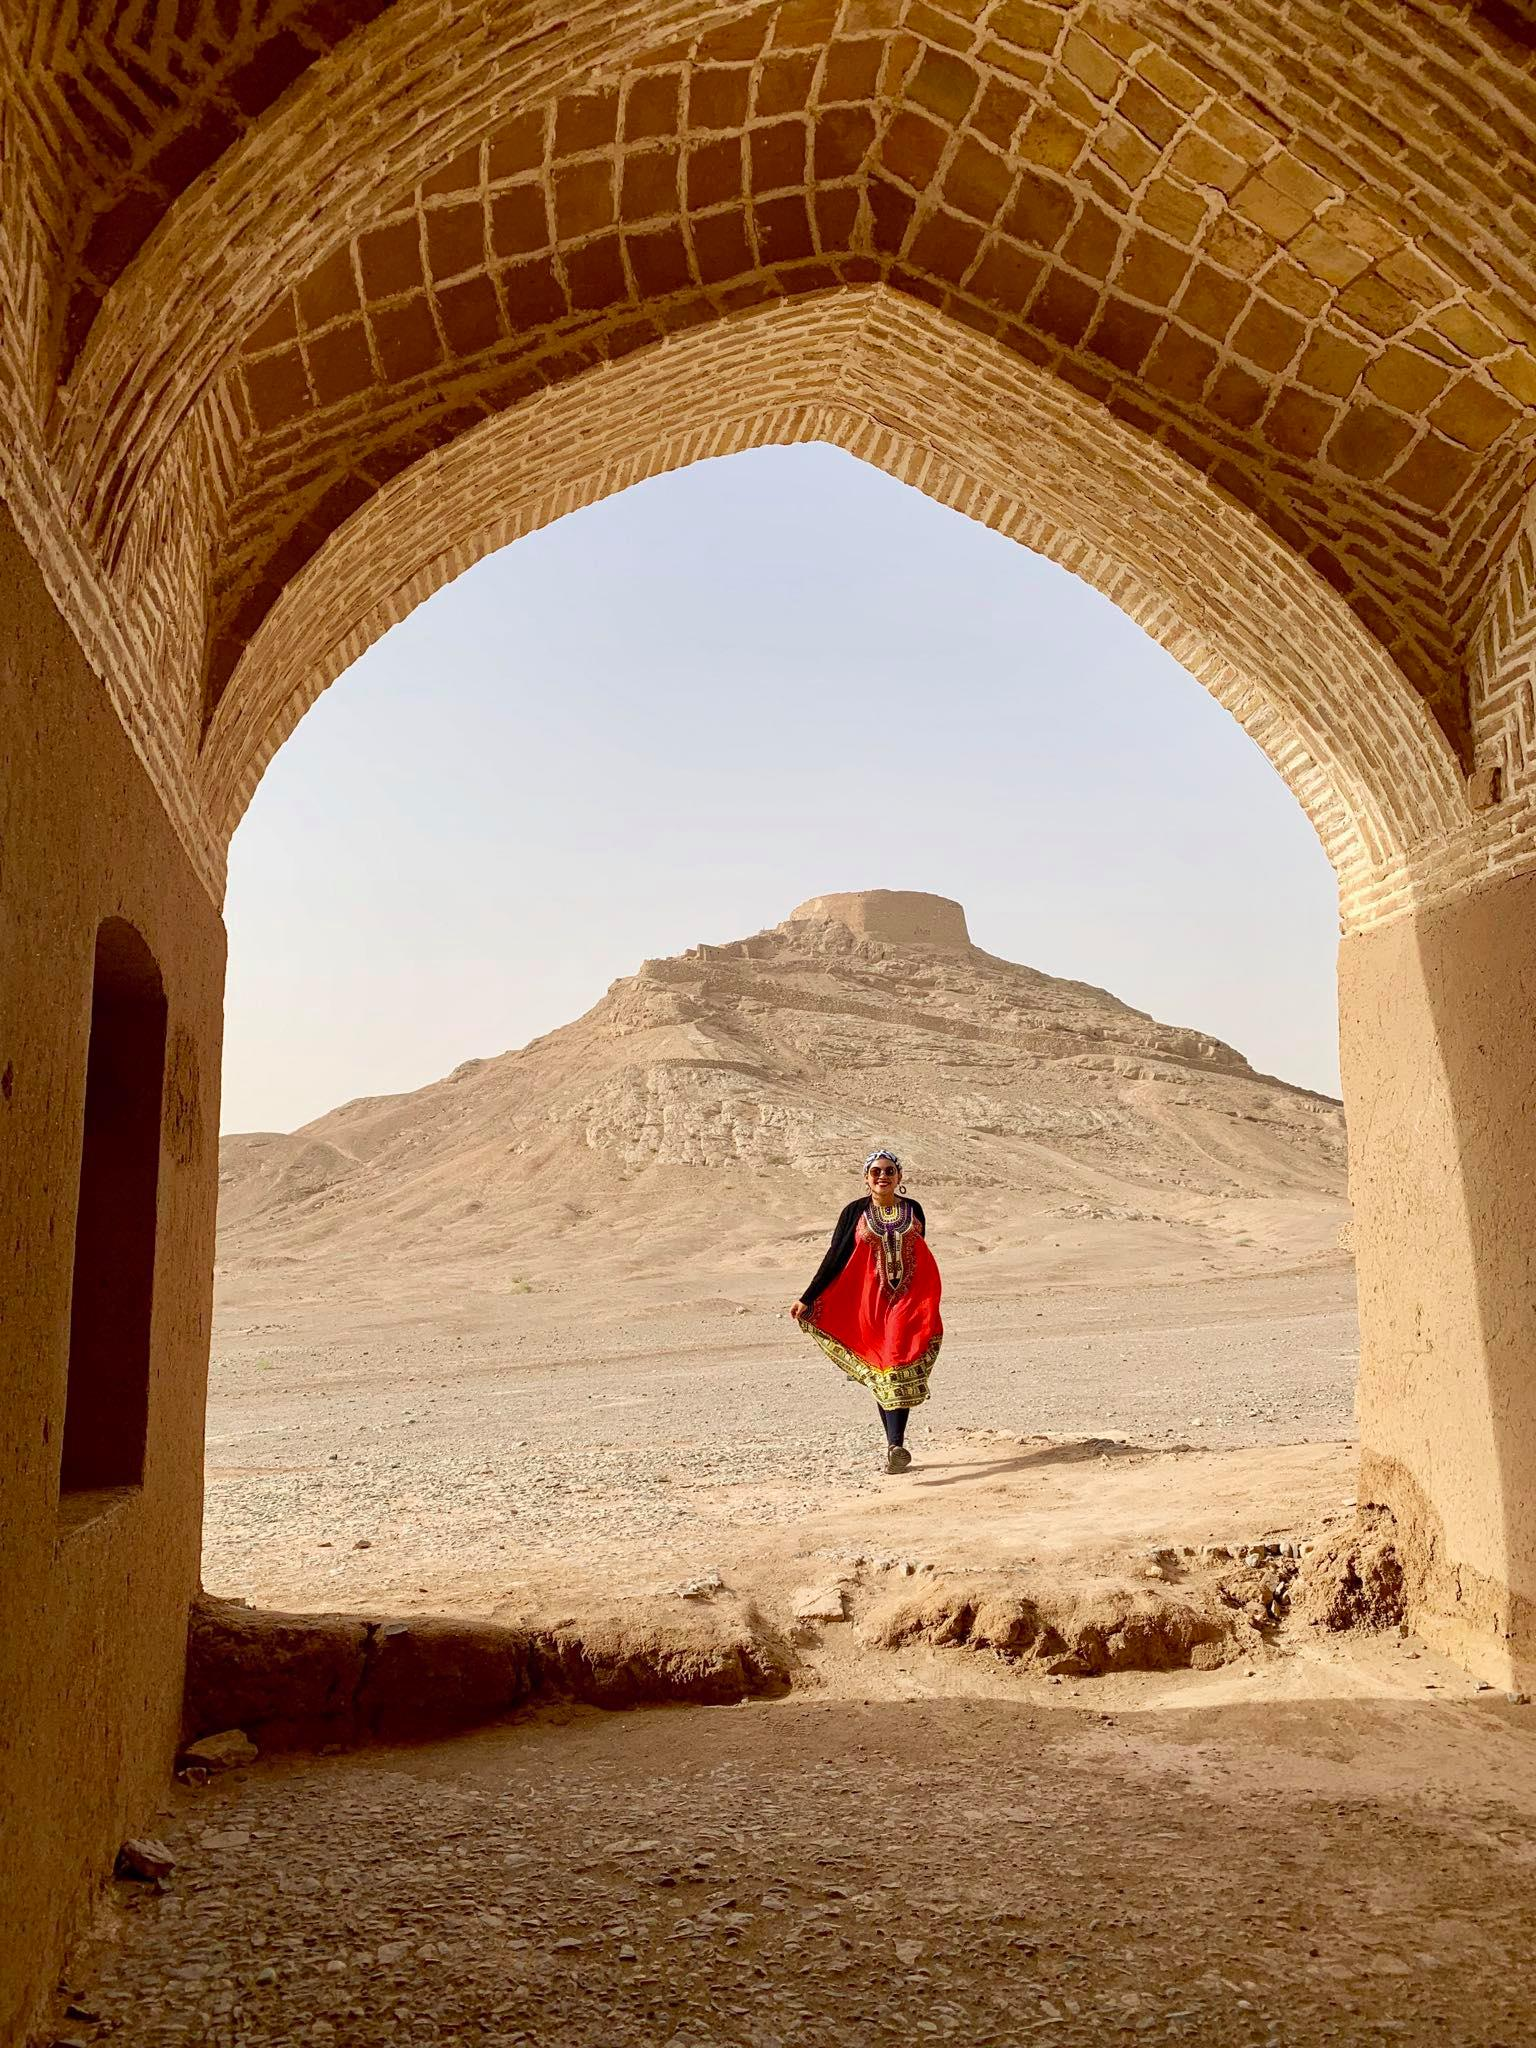 Kach Solo Travels in 2019 YAZD - the desert city in Iran17.jpg